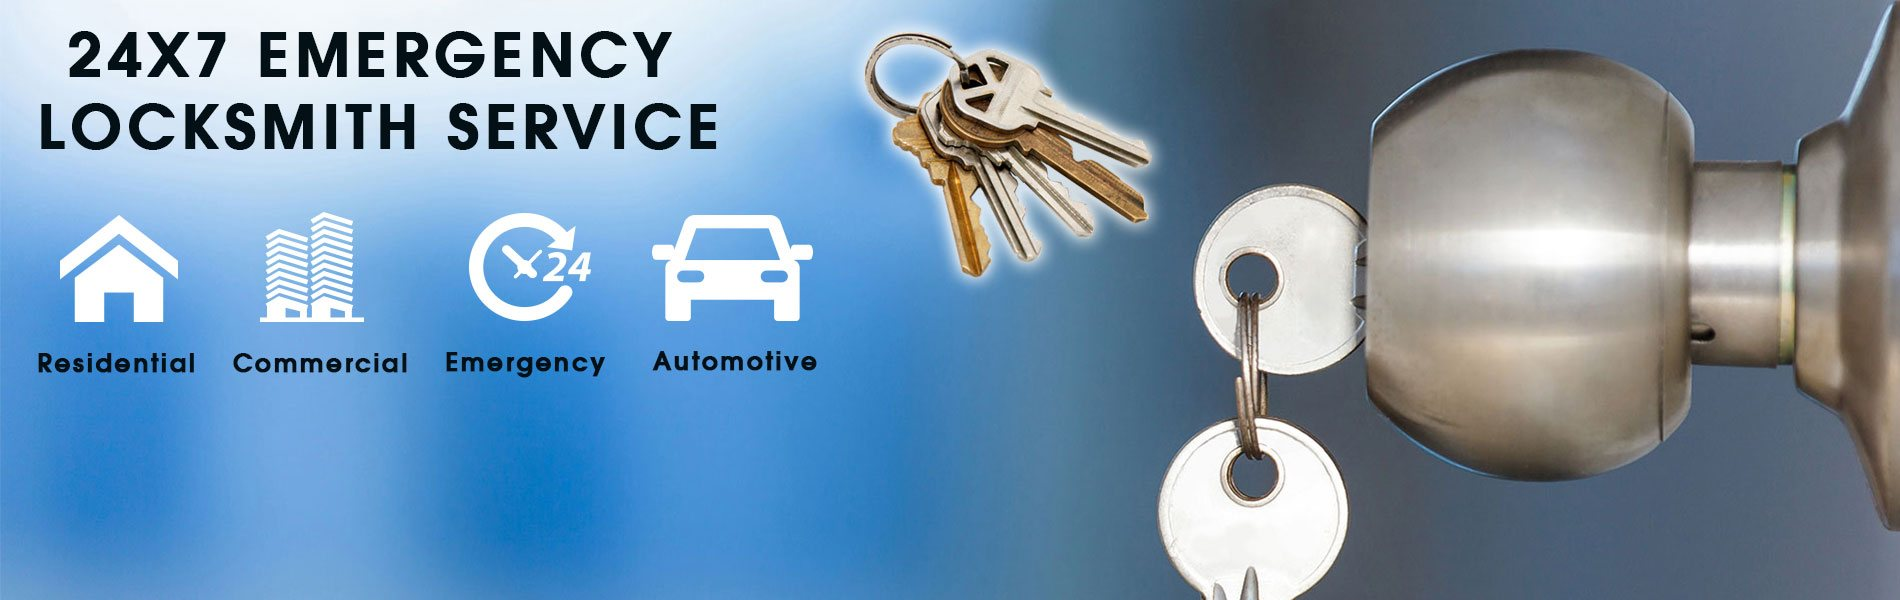 West Hartford Lock And Key West Hartford, CT 860-544-9072